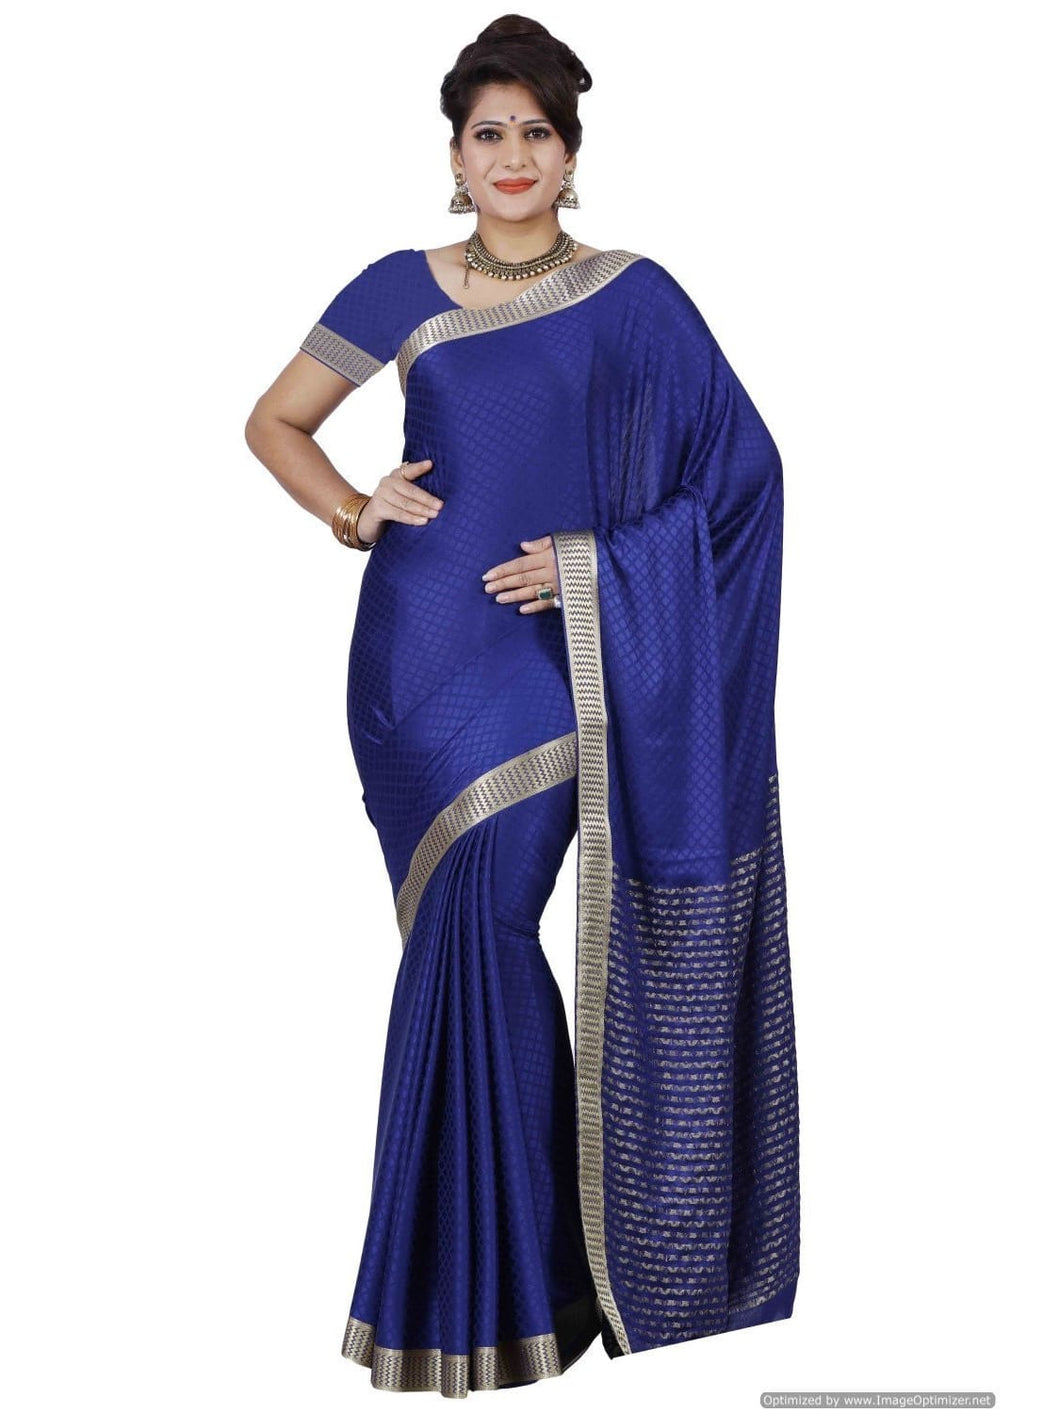 MIMOSA Check Design Crepe Kanjivaram Style Saree with Blouse in Color Navy Blue (3398-2097-nvy) - kupindaindia